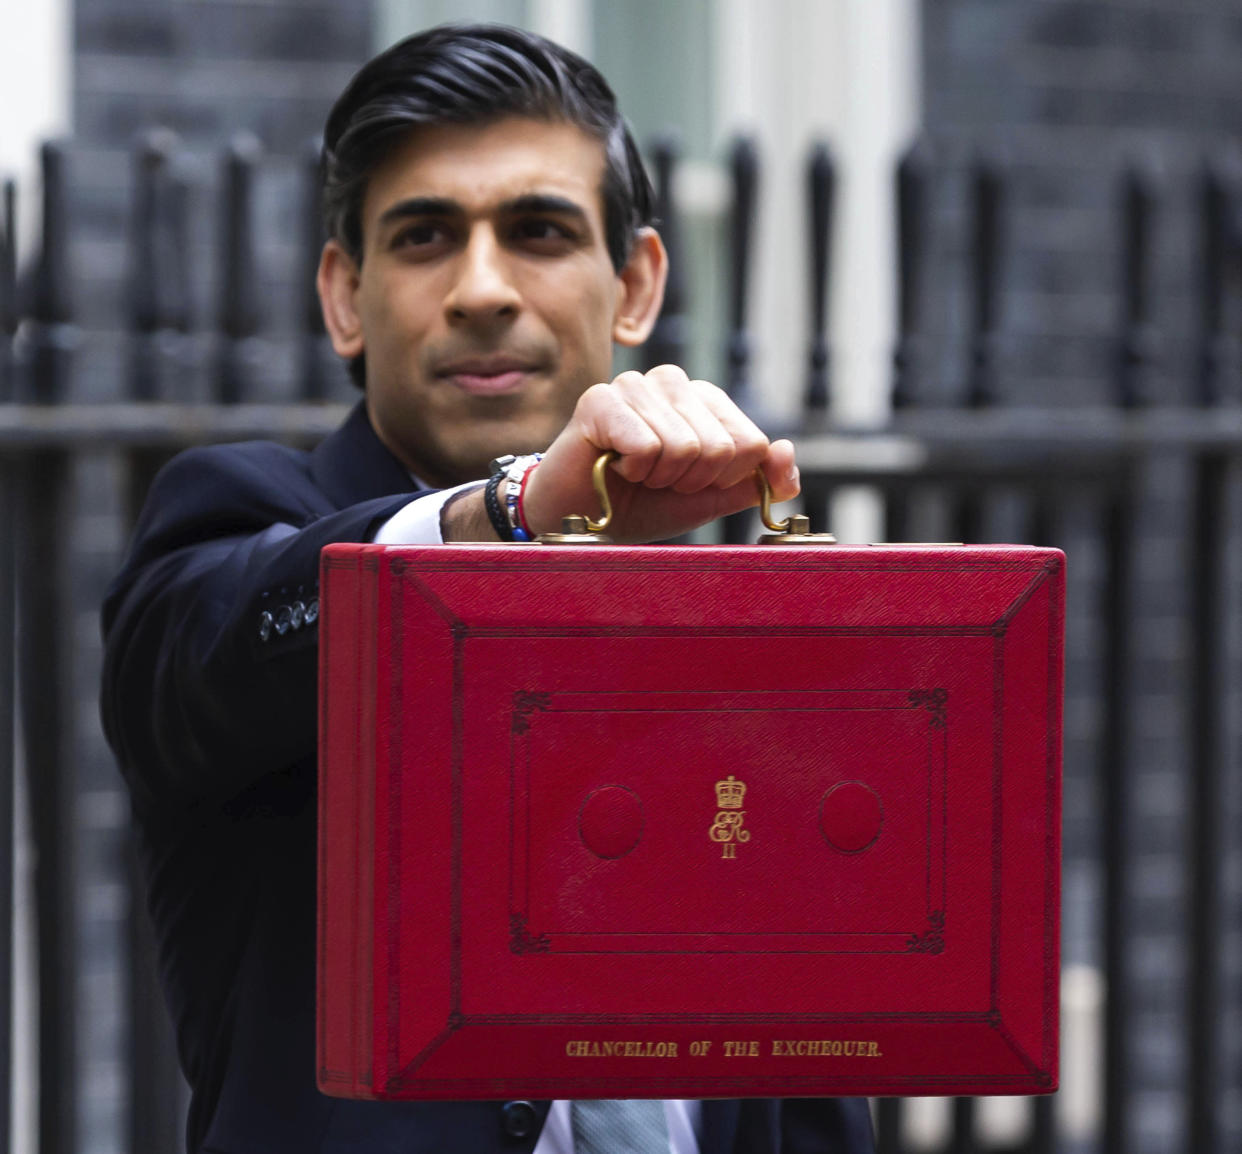 Photo by: zz/KGC-254/STAR MAX/IPx 2021 3/3/21 Chancellor of the Exchequer Rishi Sunak displays the red budget briefcase to waiting media on Downing Street on March 3, 2021. When he delivers his budget to Parliament, The Chancellor is expected to announce billions of pounds in tax cuts and spending increases and maintain numerous other support packages to assist workers, businesses and all citizens as the worldwide coronavirus pandemic continues. (London, England, UK)